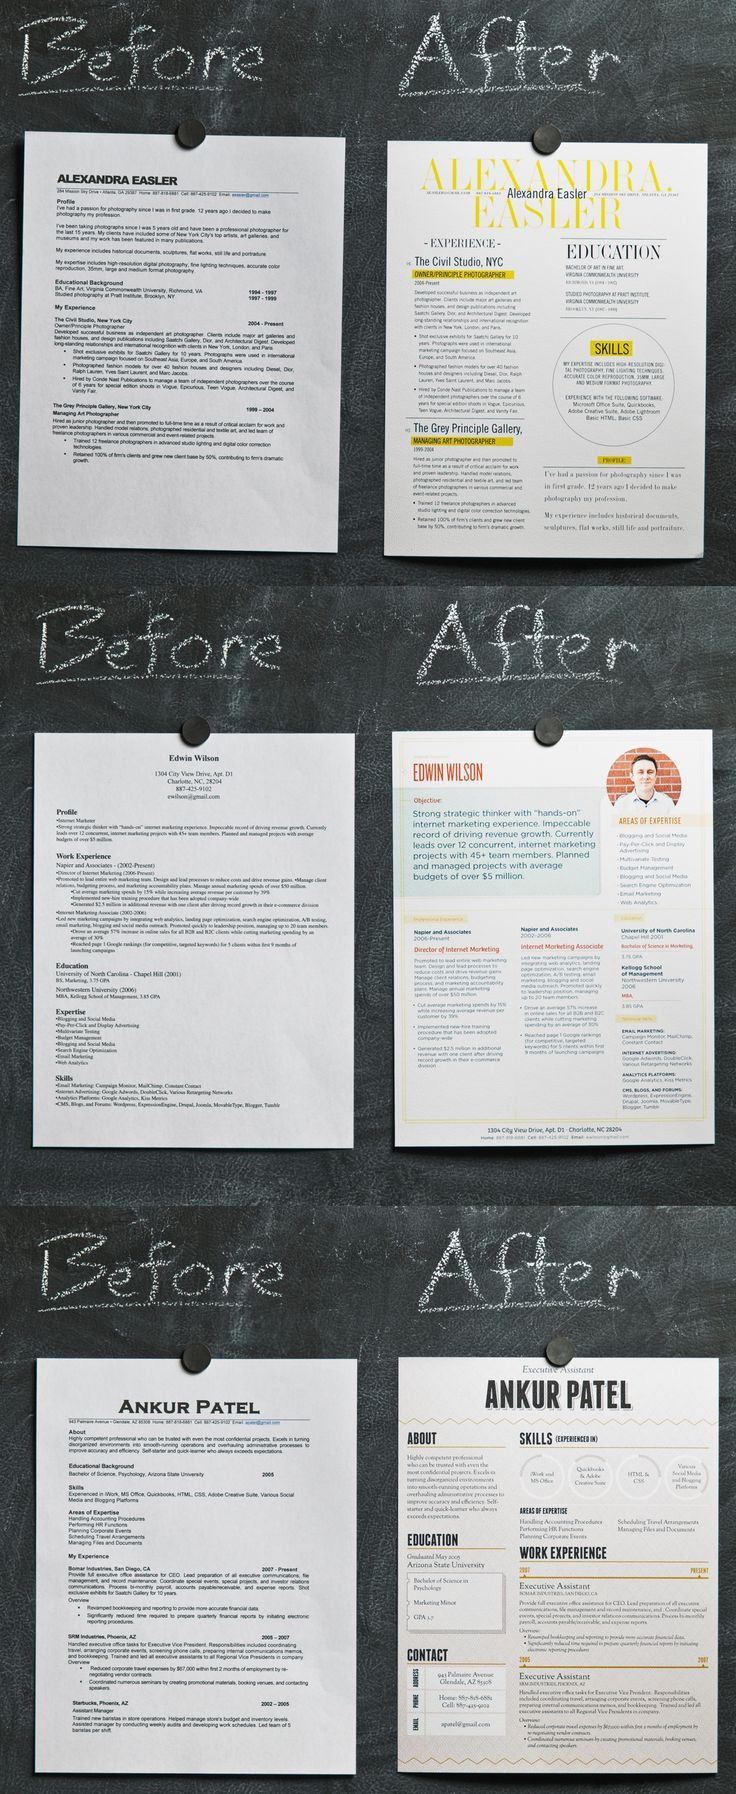 How To Make Your Resume Stand Out Enchanting Can Beautiful Design Make Your Resume Stand Out  Design Resume